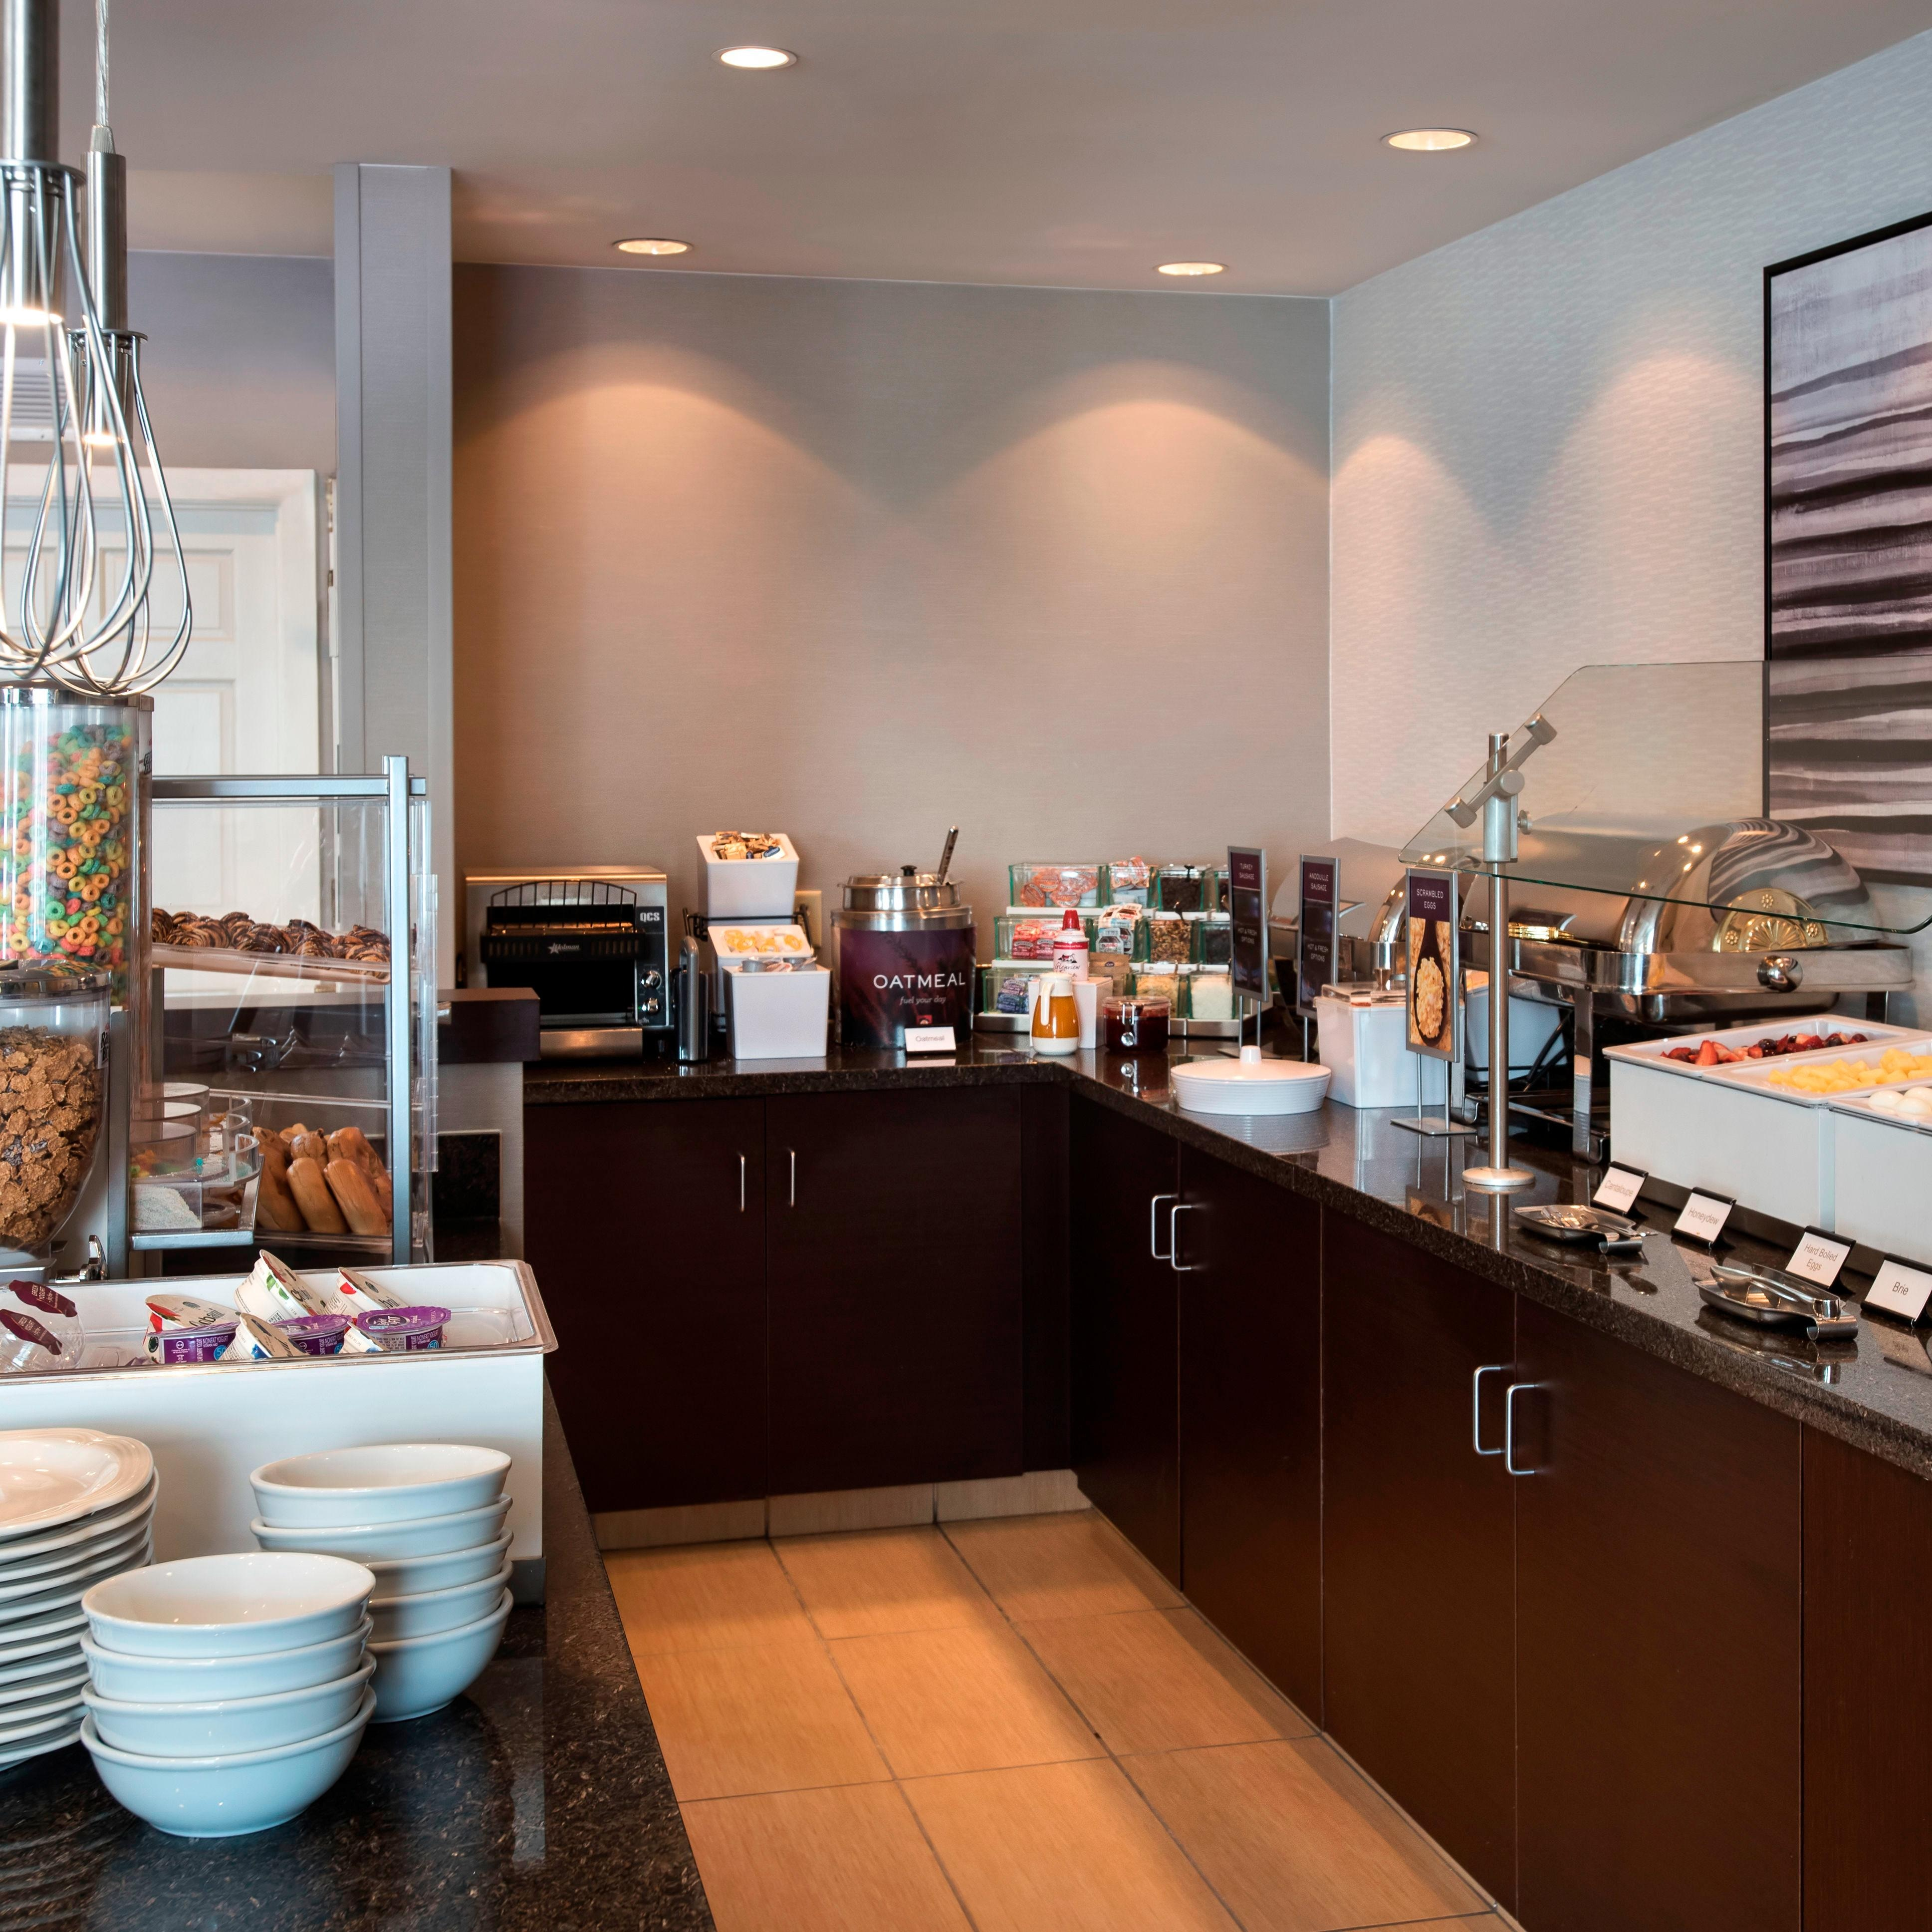 Power-up your morning at our complimentary breakfast buffet, where you can indulge in hot and cold American classics, such as scrambled eggs, pastries and cereal.